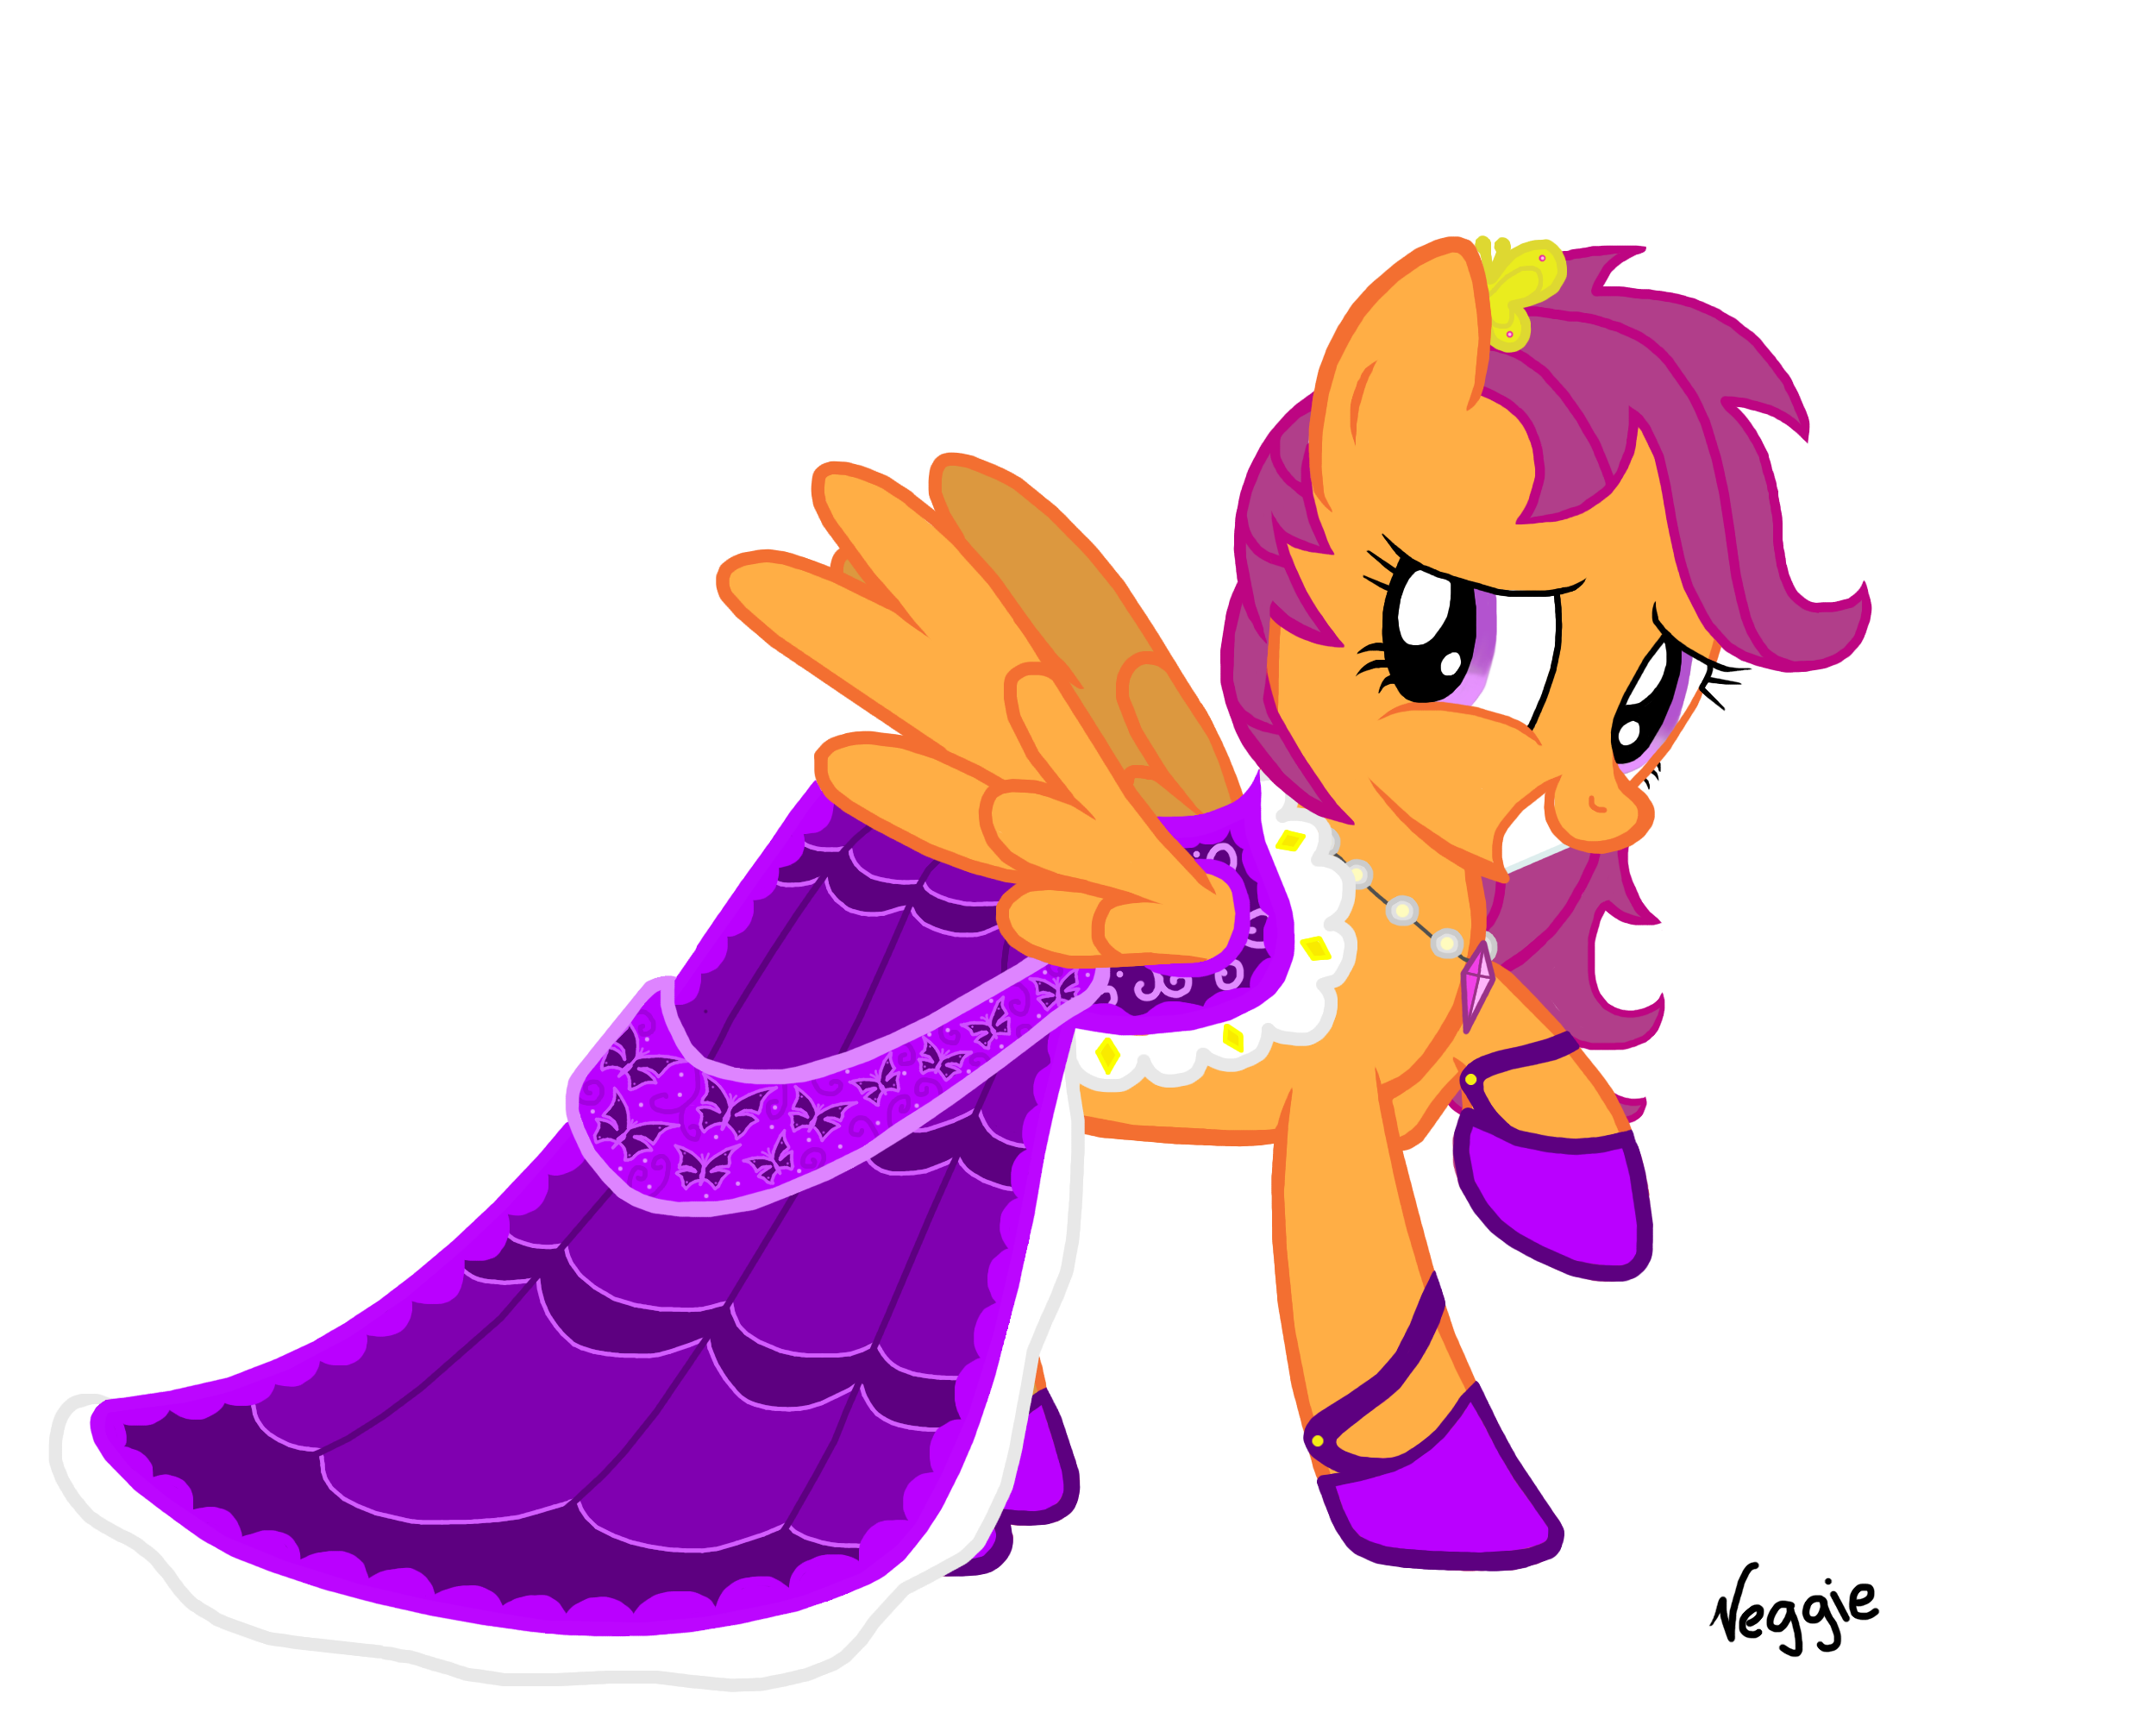 773687 Artist Veggie55 Boots Clothes Dead Source Dress Female Gala Dress Jewelry Mare Necklace Older Pegasus Pony Raised Hoof Safe Scootaloo Shoes Simple Background Solo Spread Wings Transparent Background Wings Derpibooru Scootaloo dress up is a game about dress up, pets, animals, pony, scootaloo, dresses, outfit, style. derpibooru